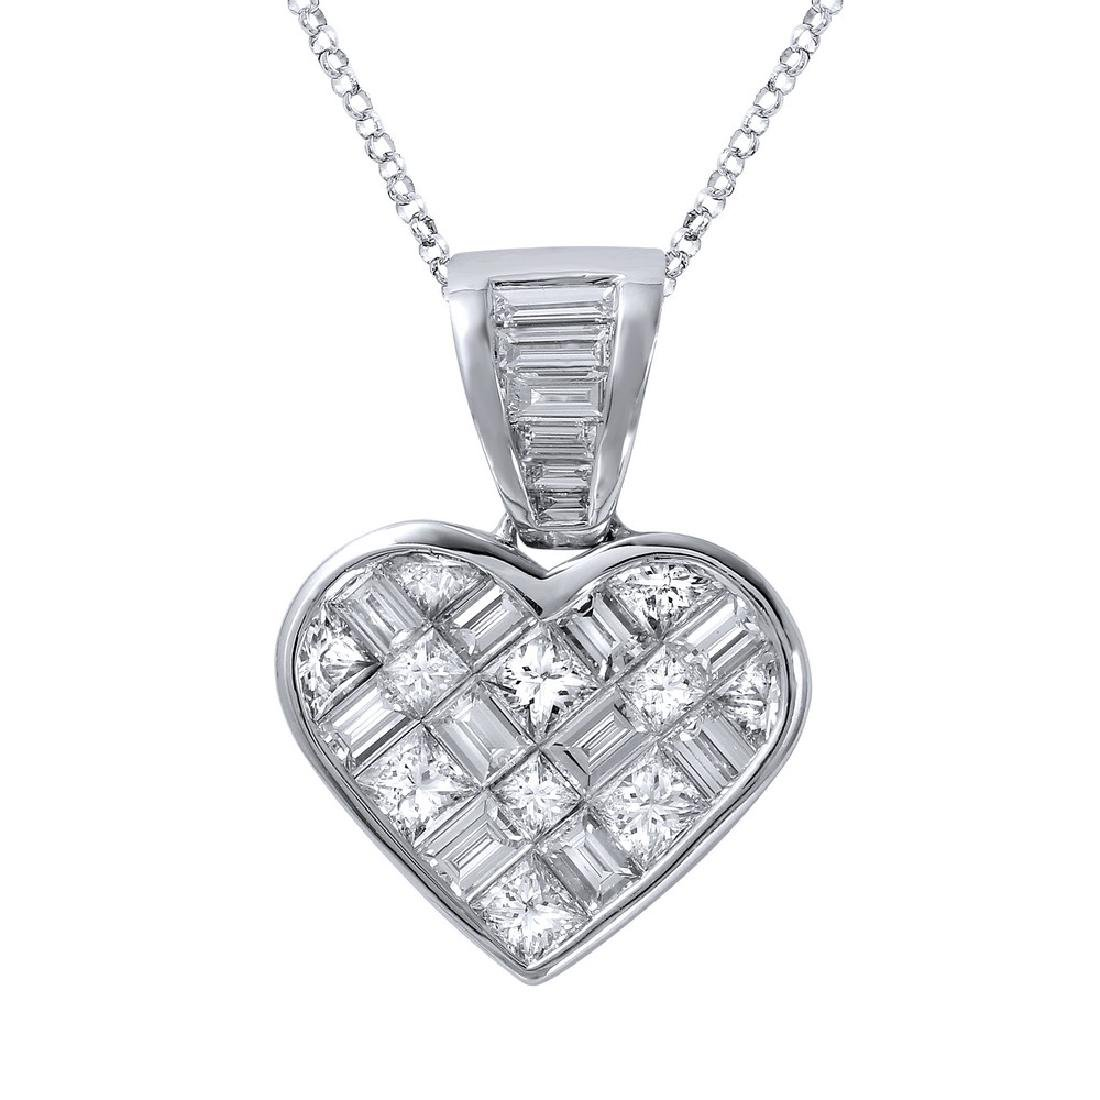 Genuine 5.16 TCW 14K White Gold Ladies Necklace